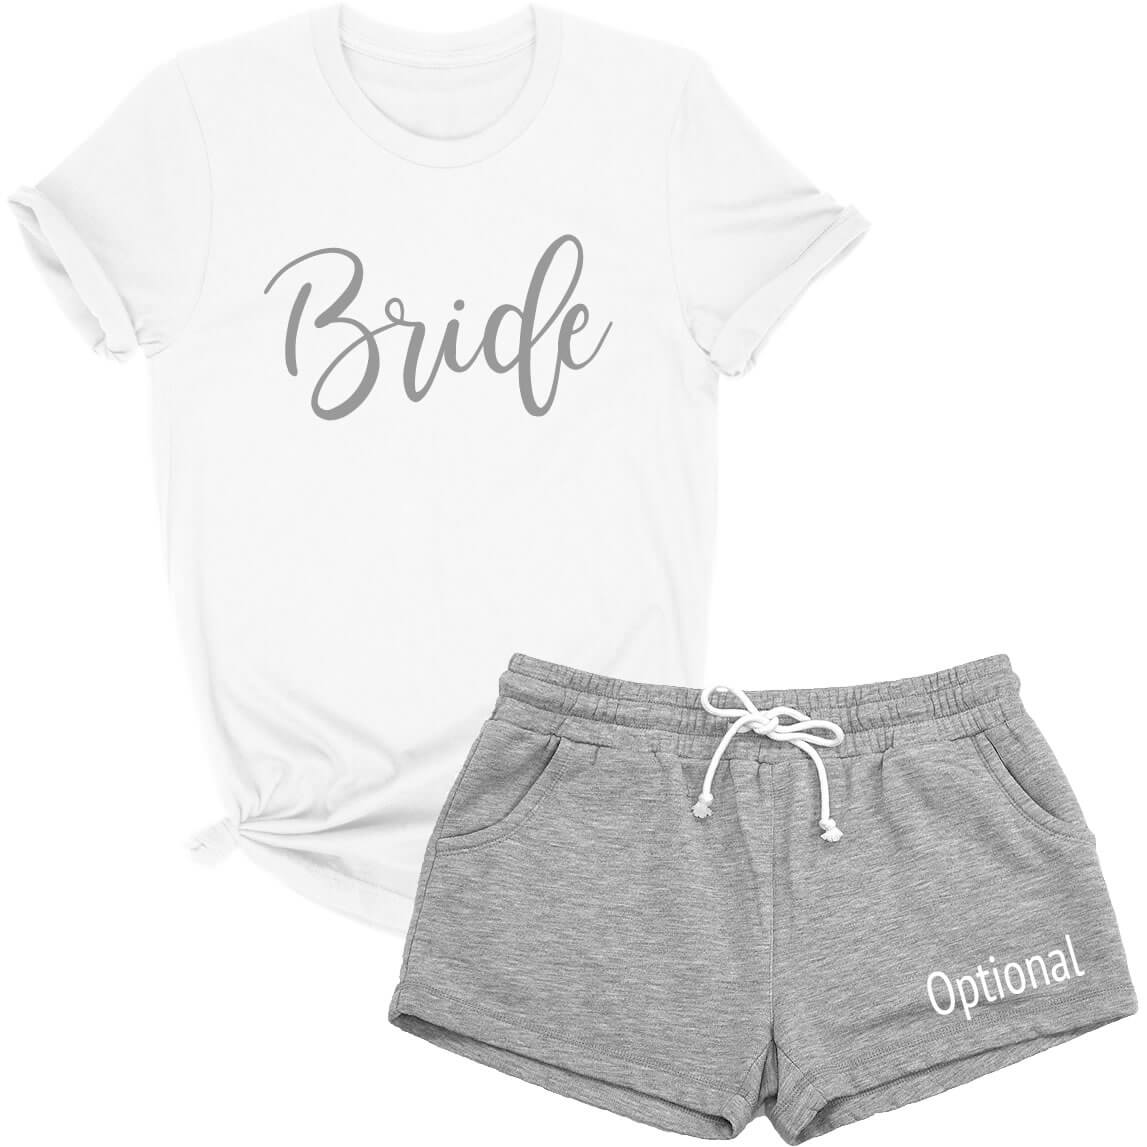 Bride T Shirt Amp Shorts Pajama Set Personalized Brides